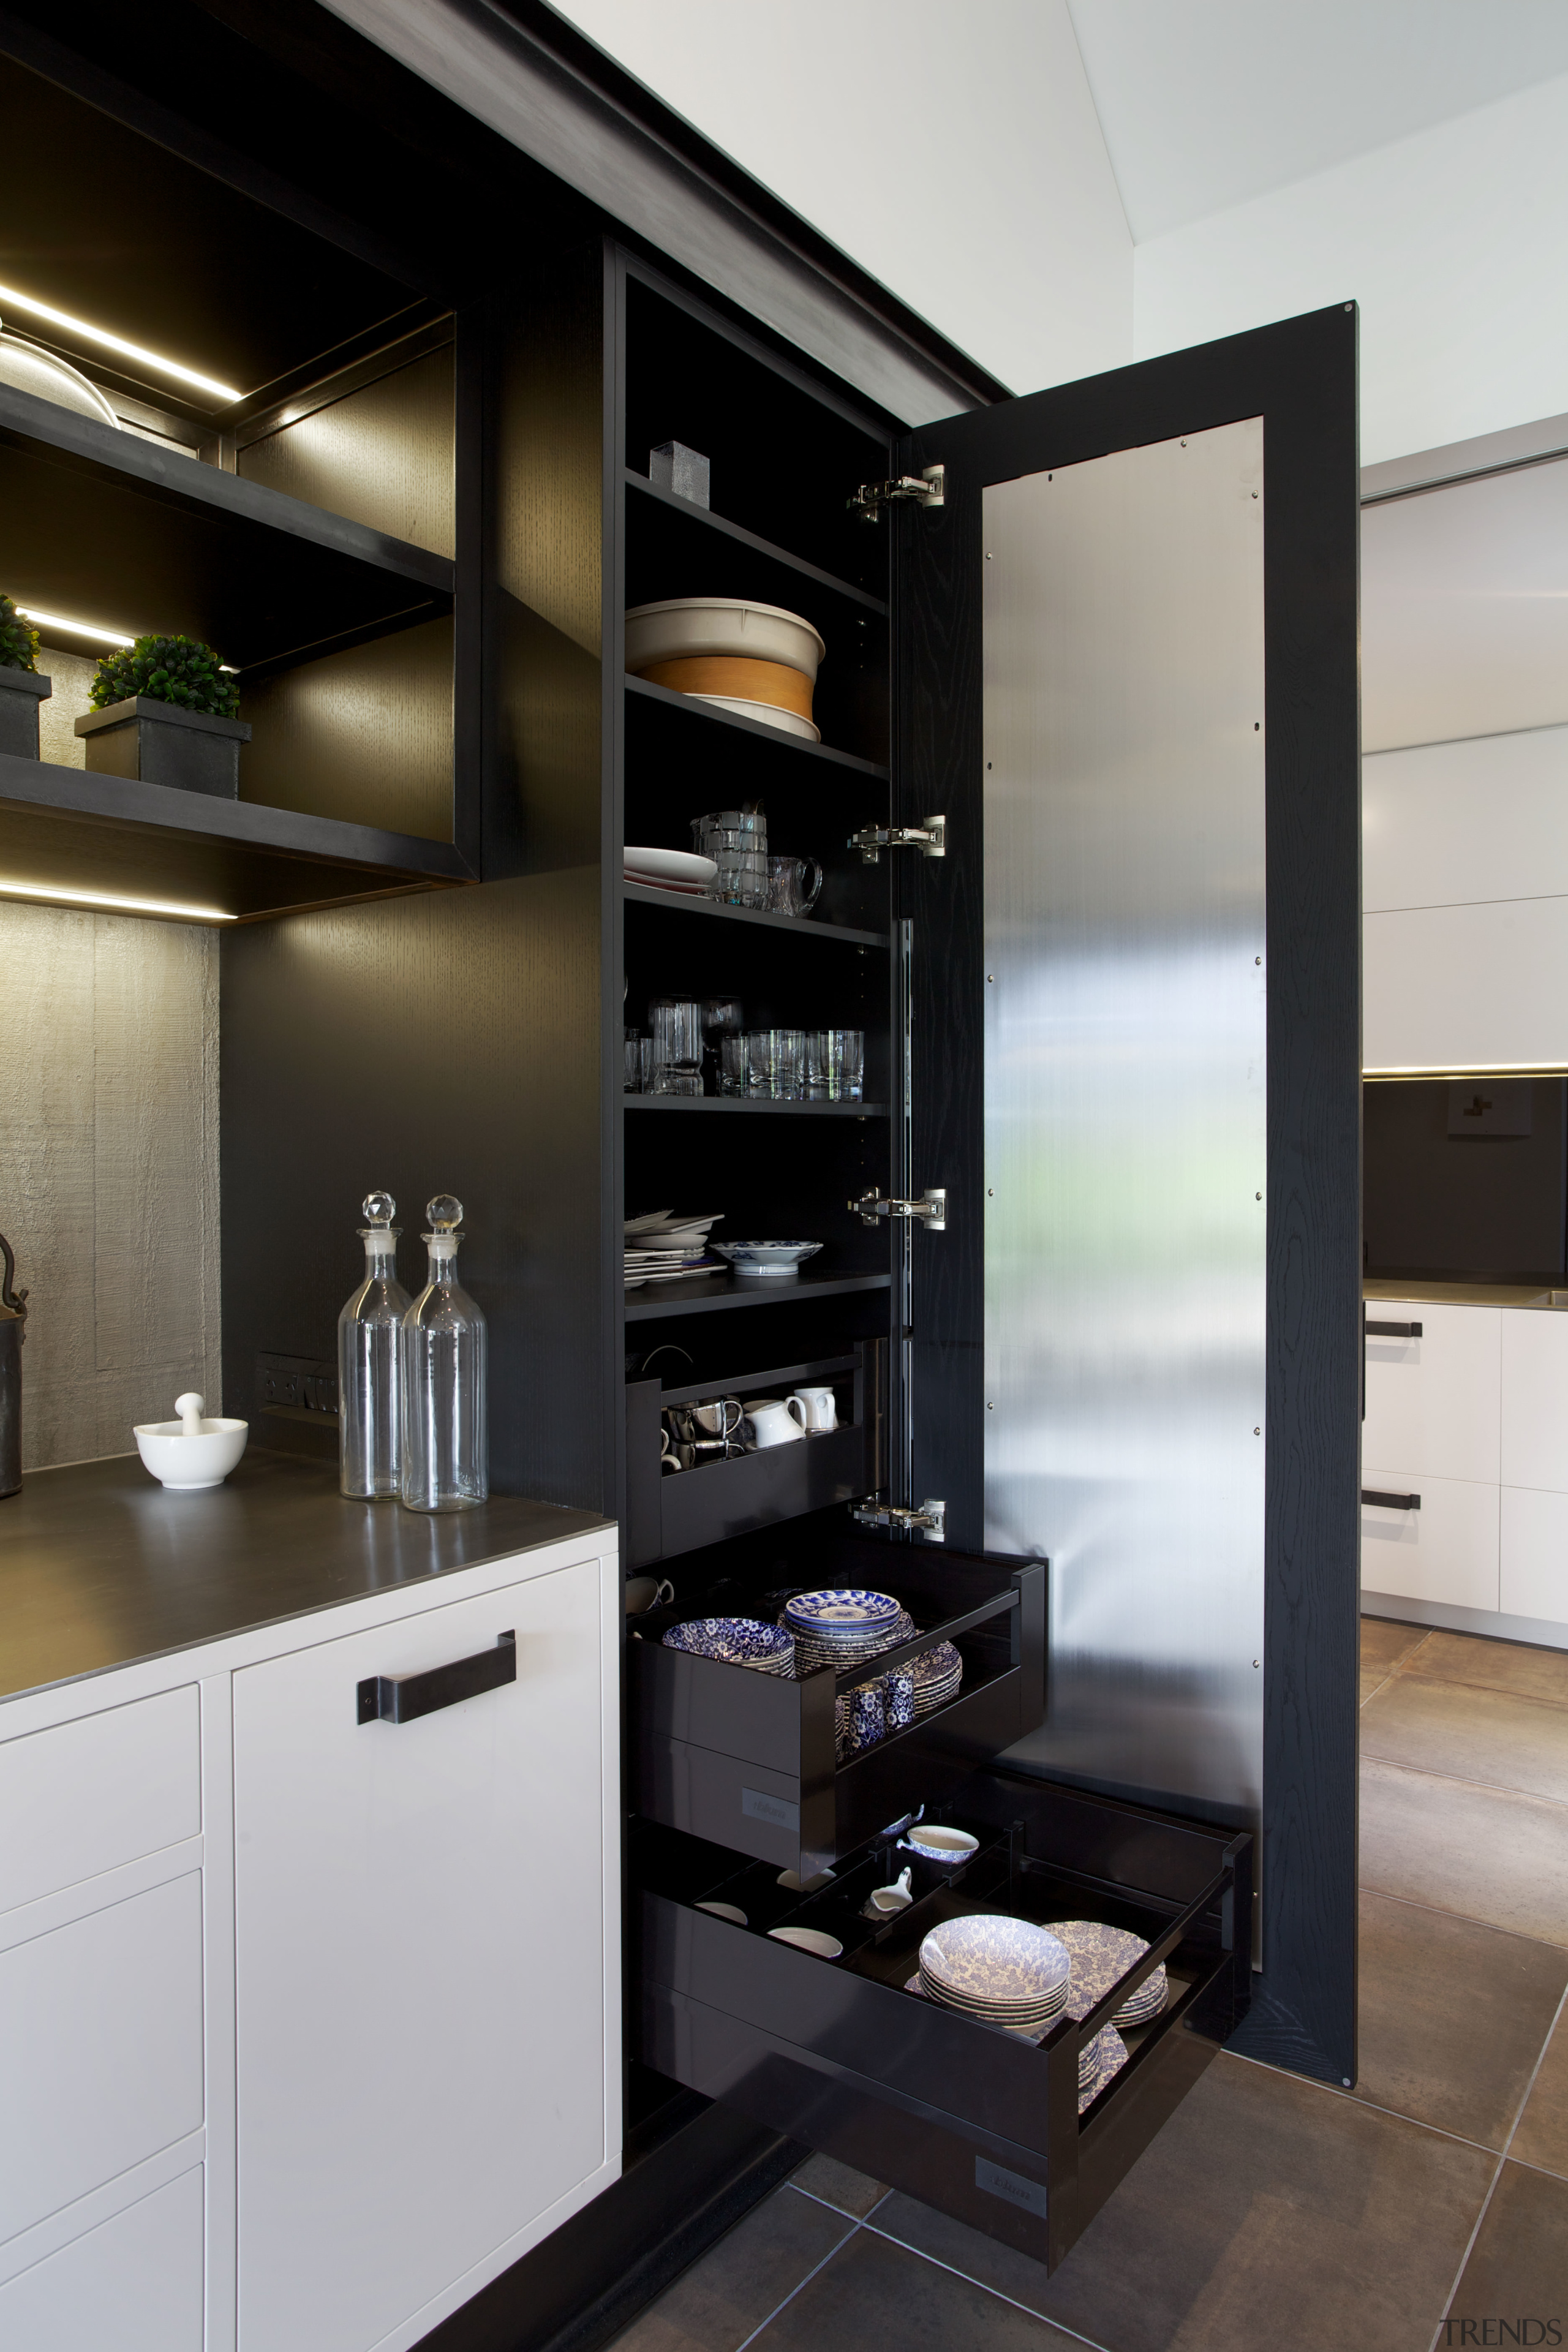 Storage is provided in tall cabinets either side furniture, interior design, kitchen, black, gray